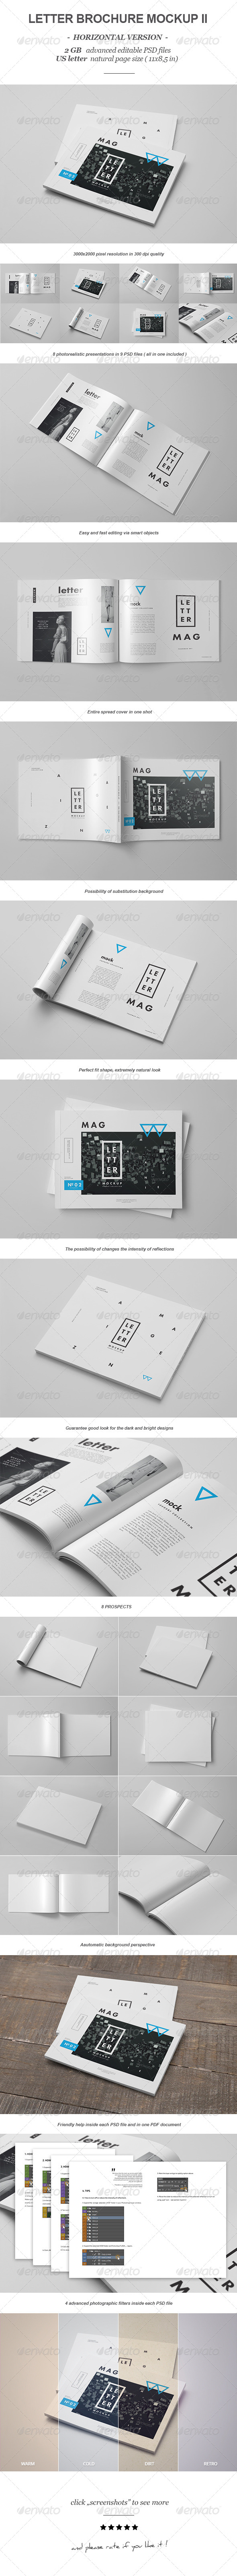 GraphicRiver Horizontal Letter Magazine Brochure Mock-up 2 8354340